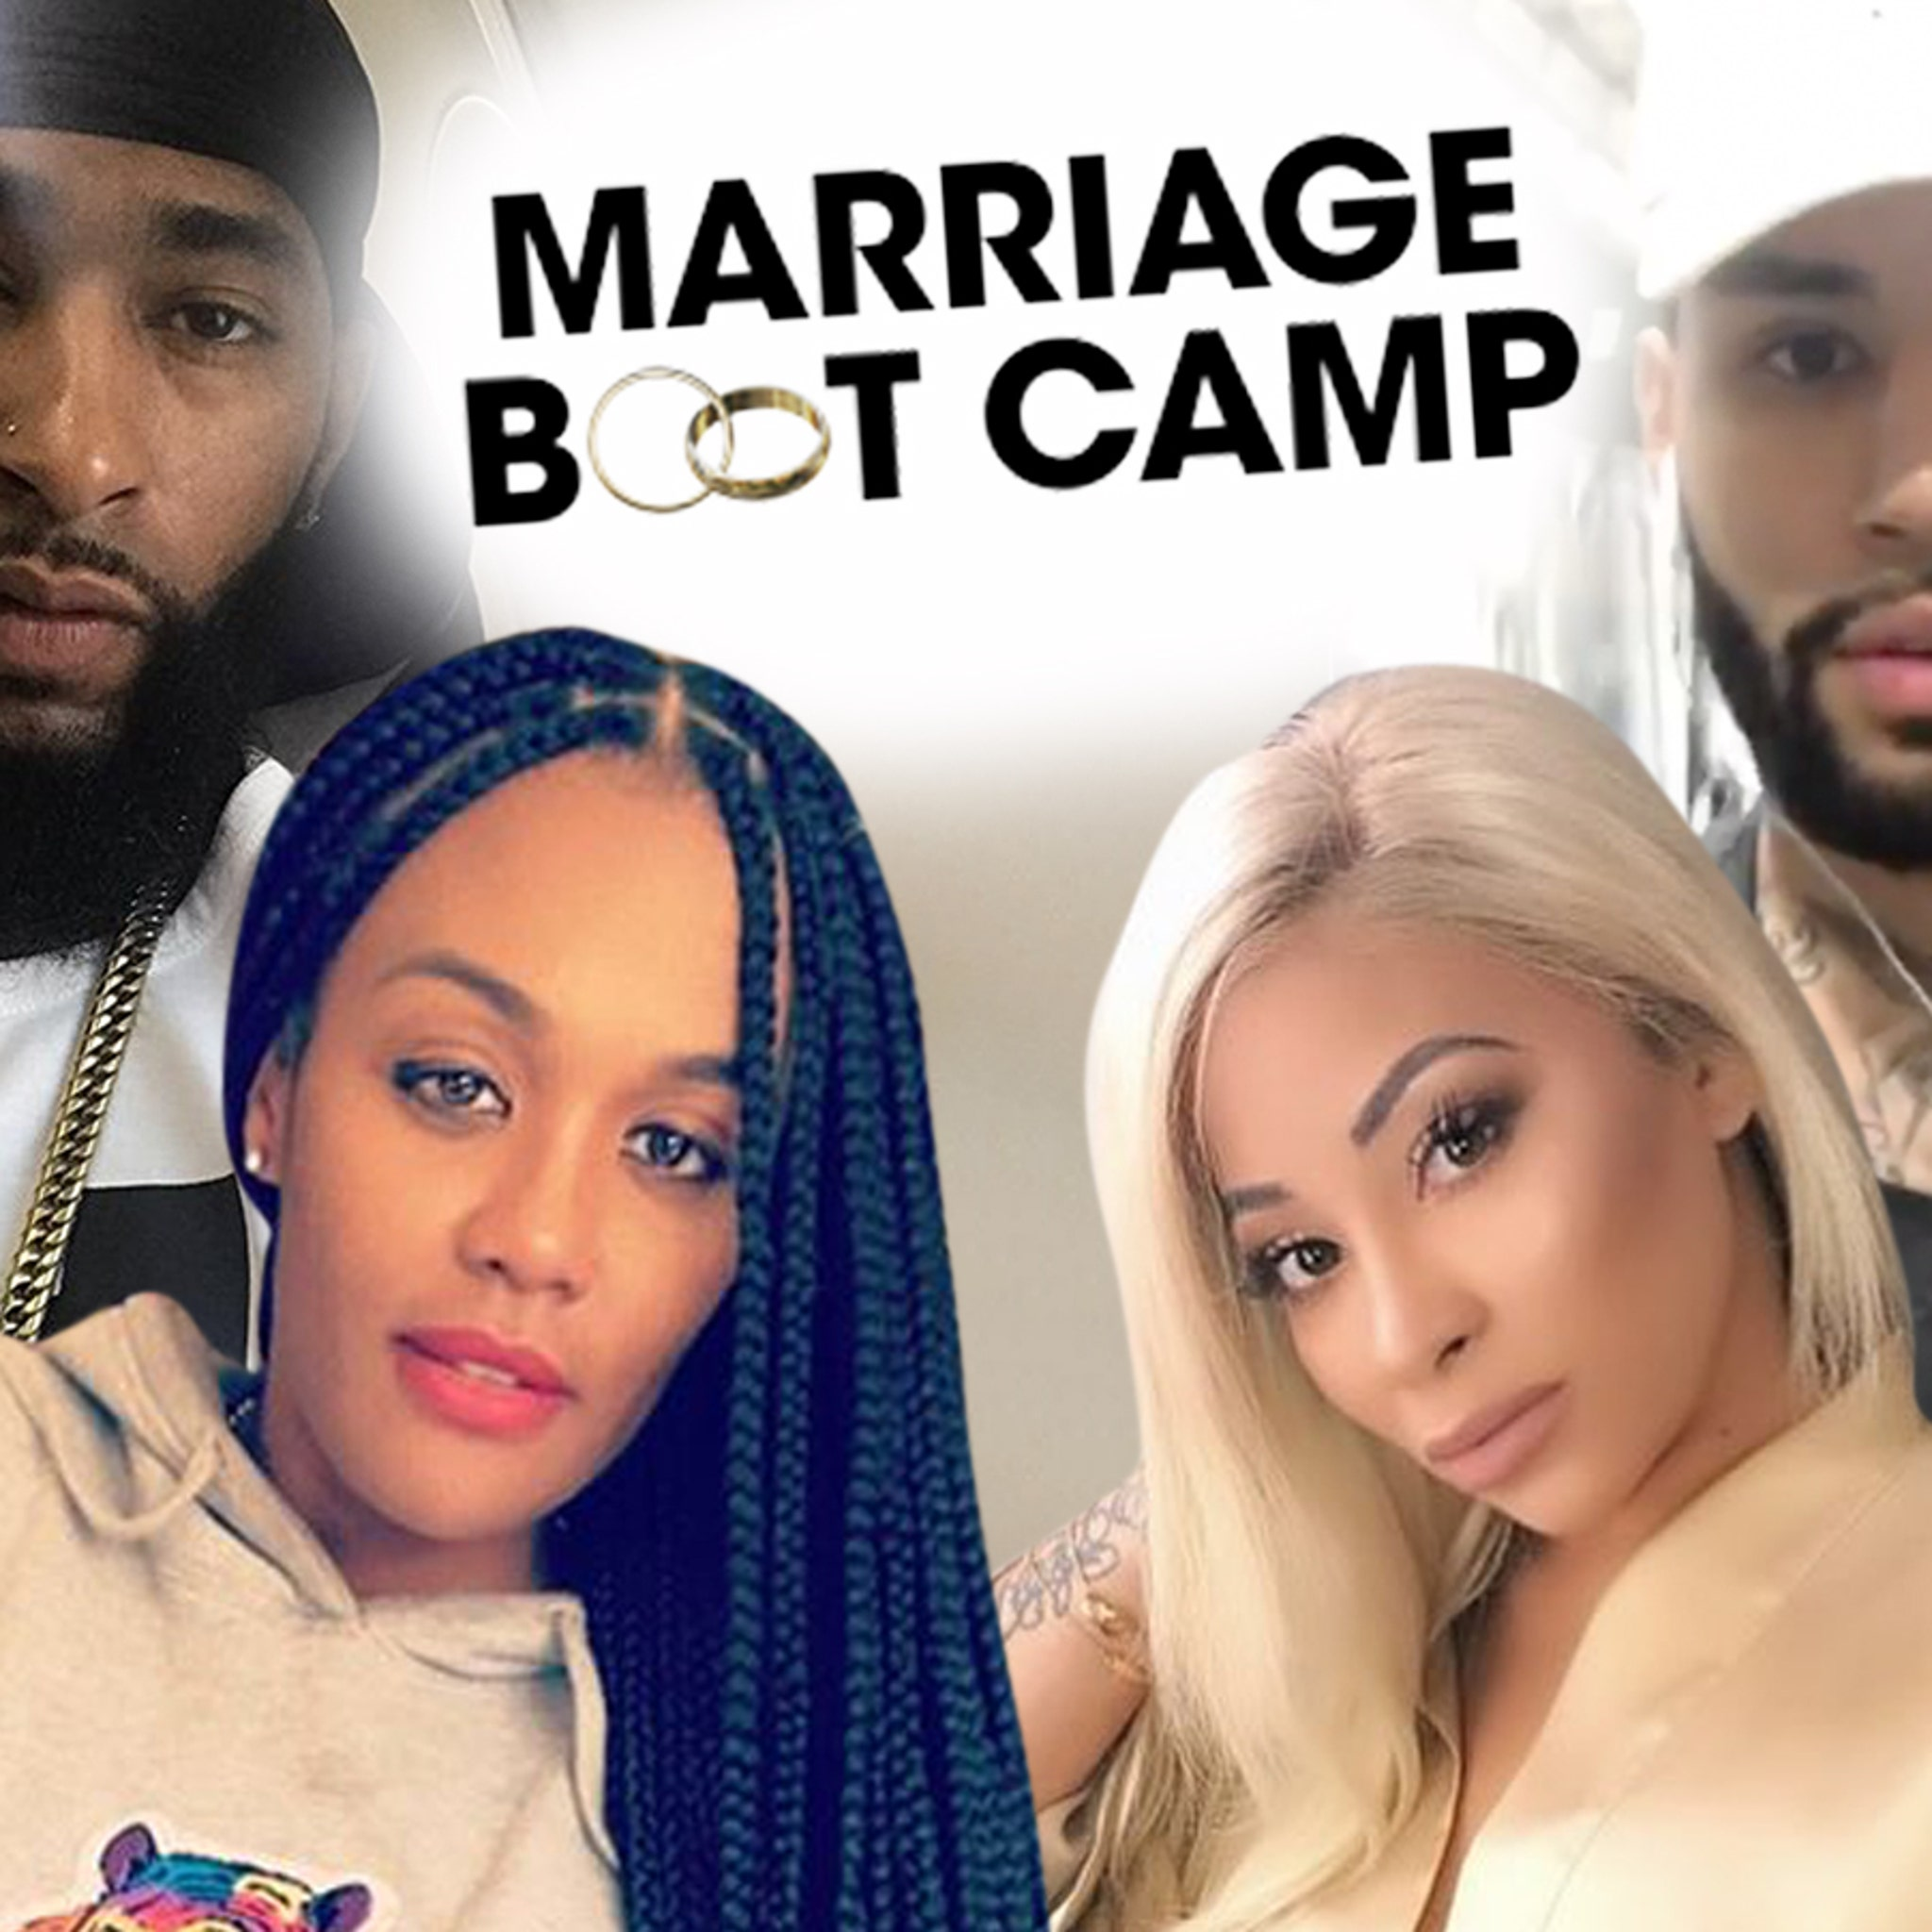 'Marriage Boot Camp' Brawl Involving Hazel-E Shuts Down Production